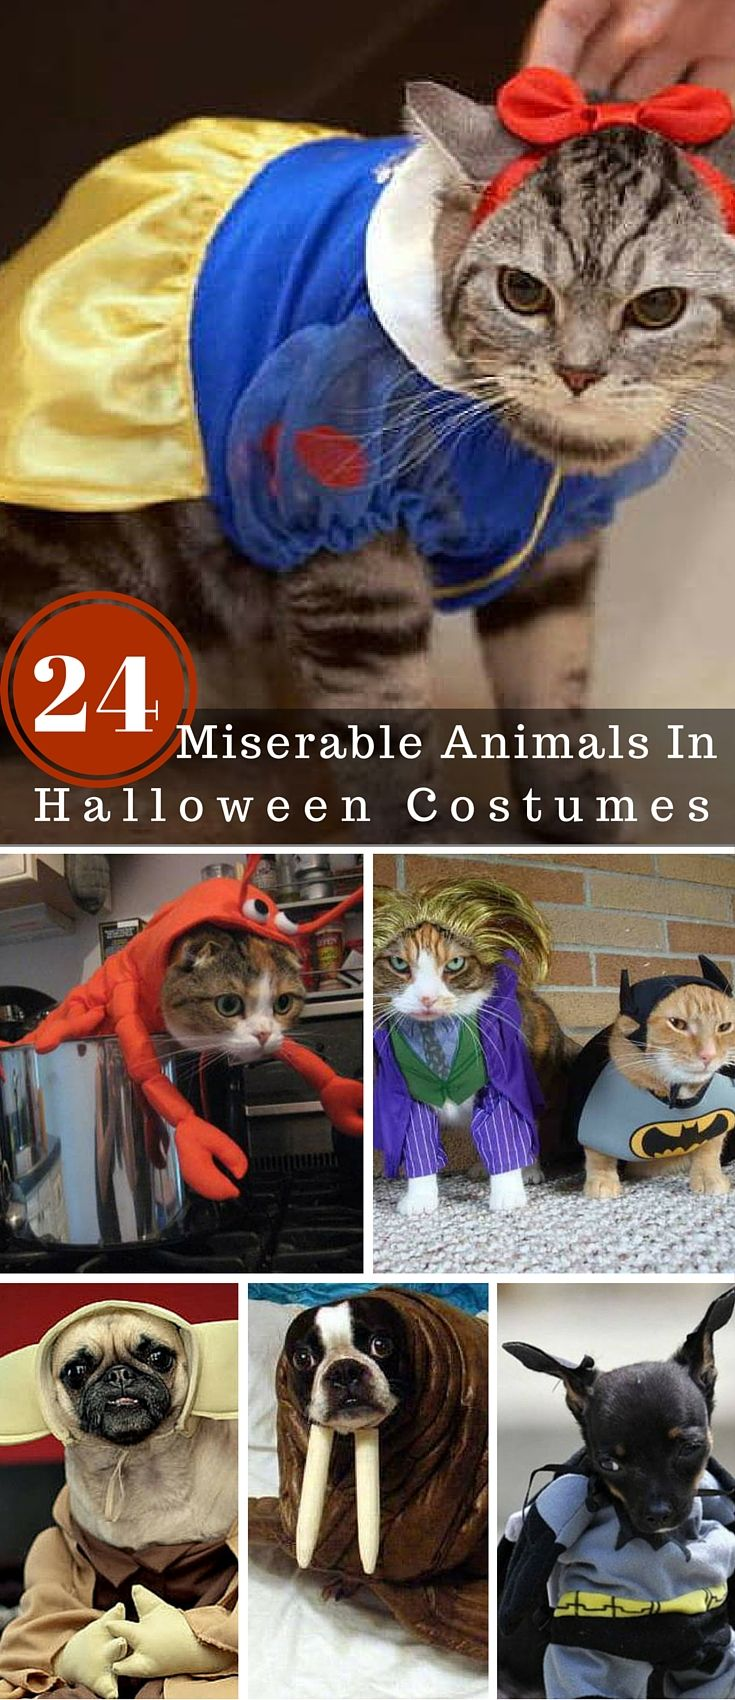 Halloween isn't fun for everybody... maybe not all pet Halloween costumes are a good idea.